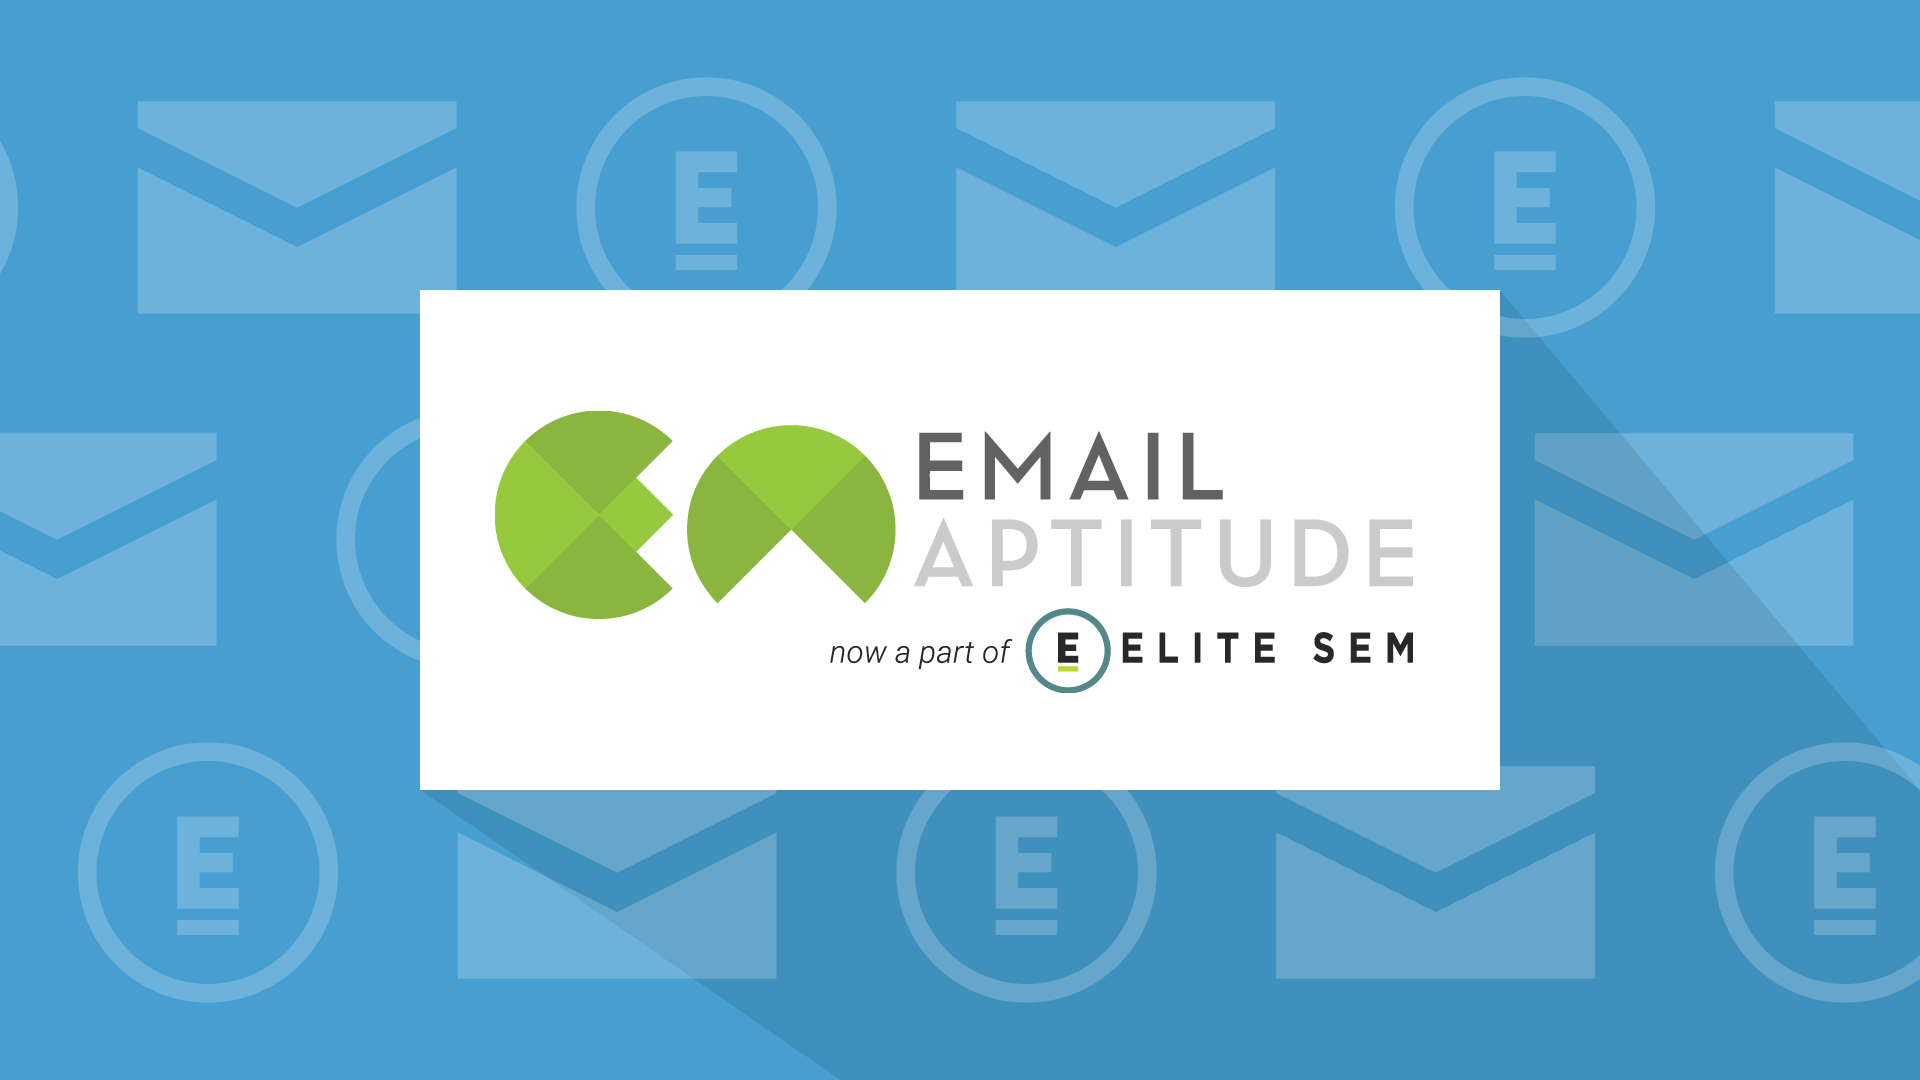 Elite SEM's Acquisition Of Email Aptitude Creates Full-Service Agency | DeviceDaily.com